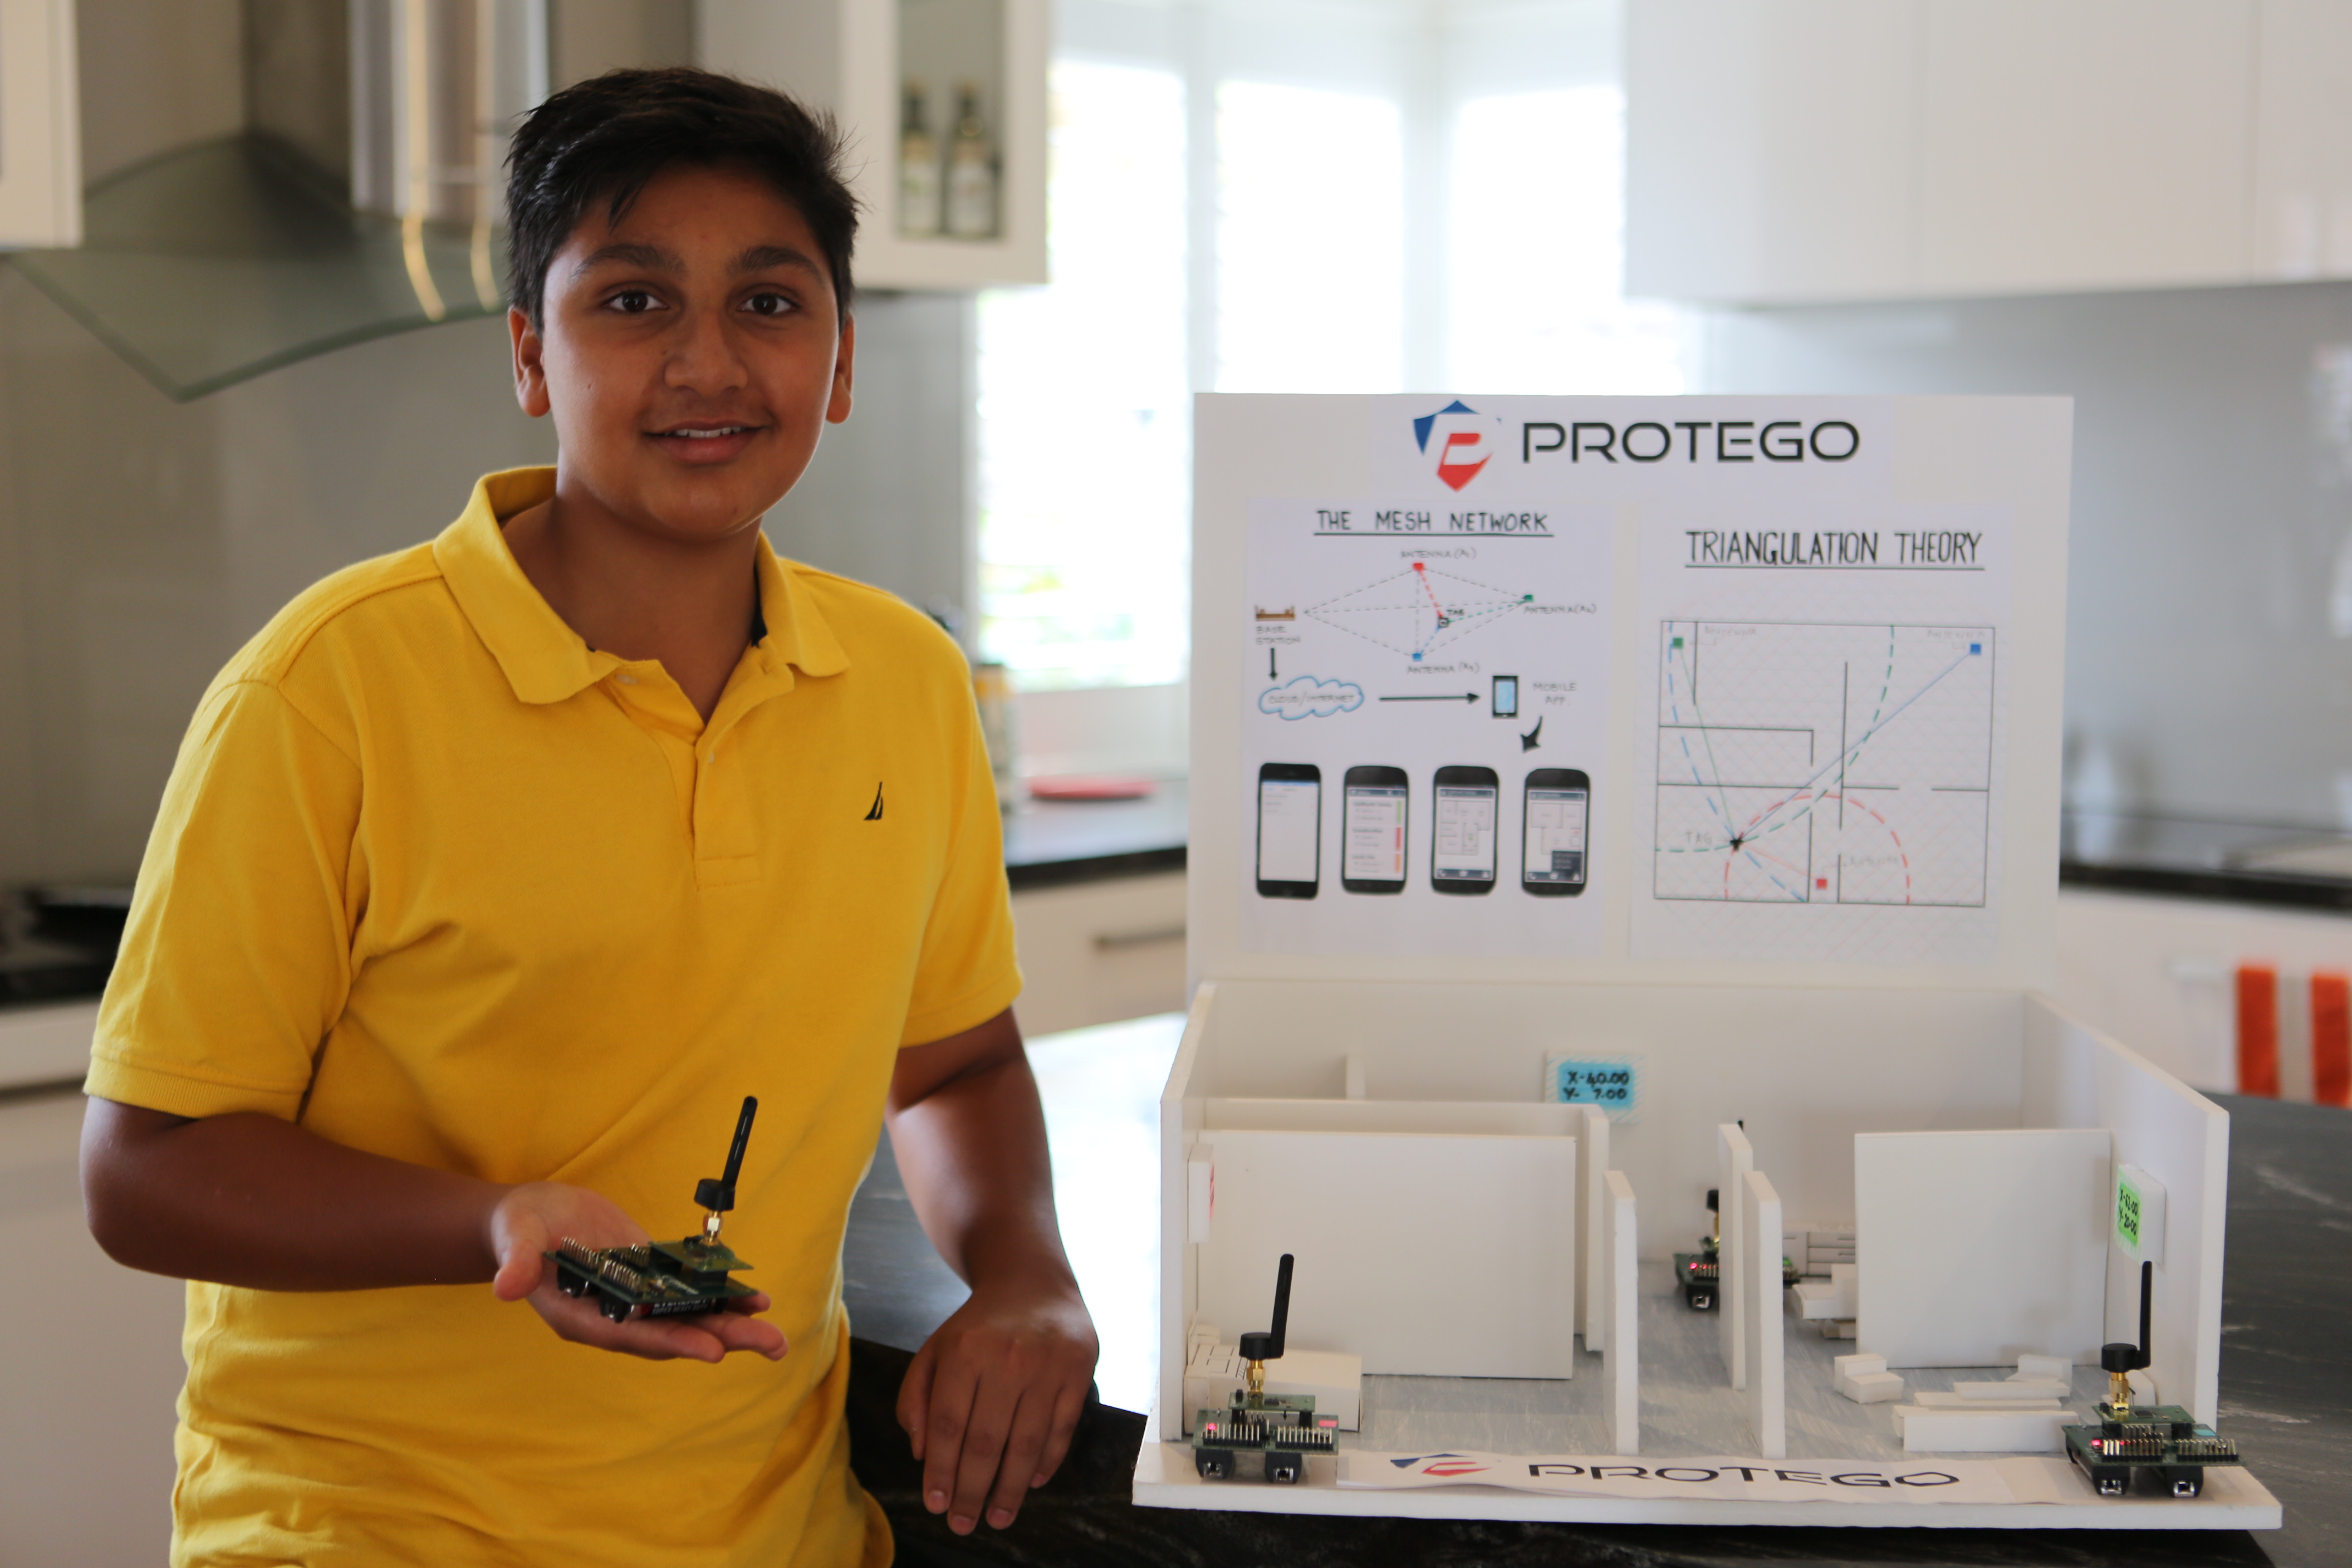 Dhruv Verma with his project